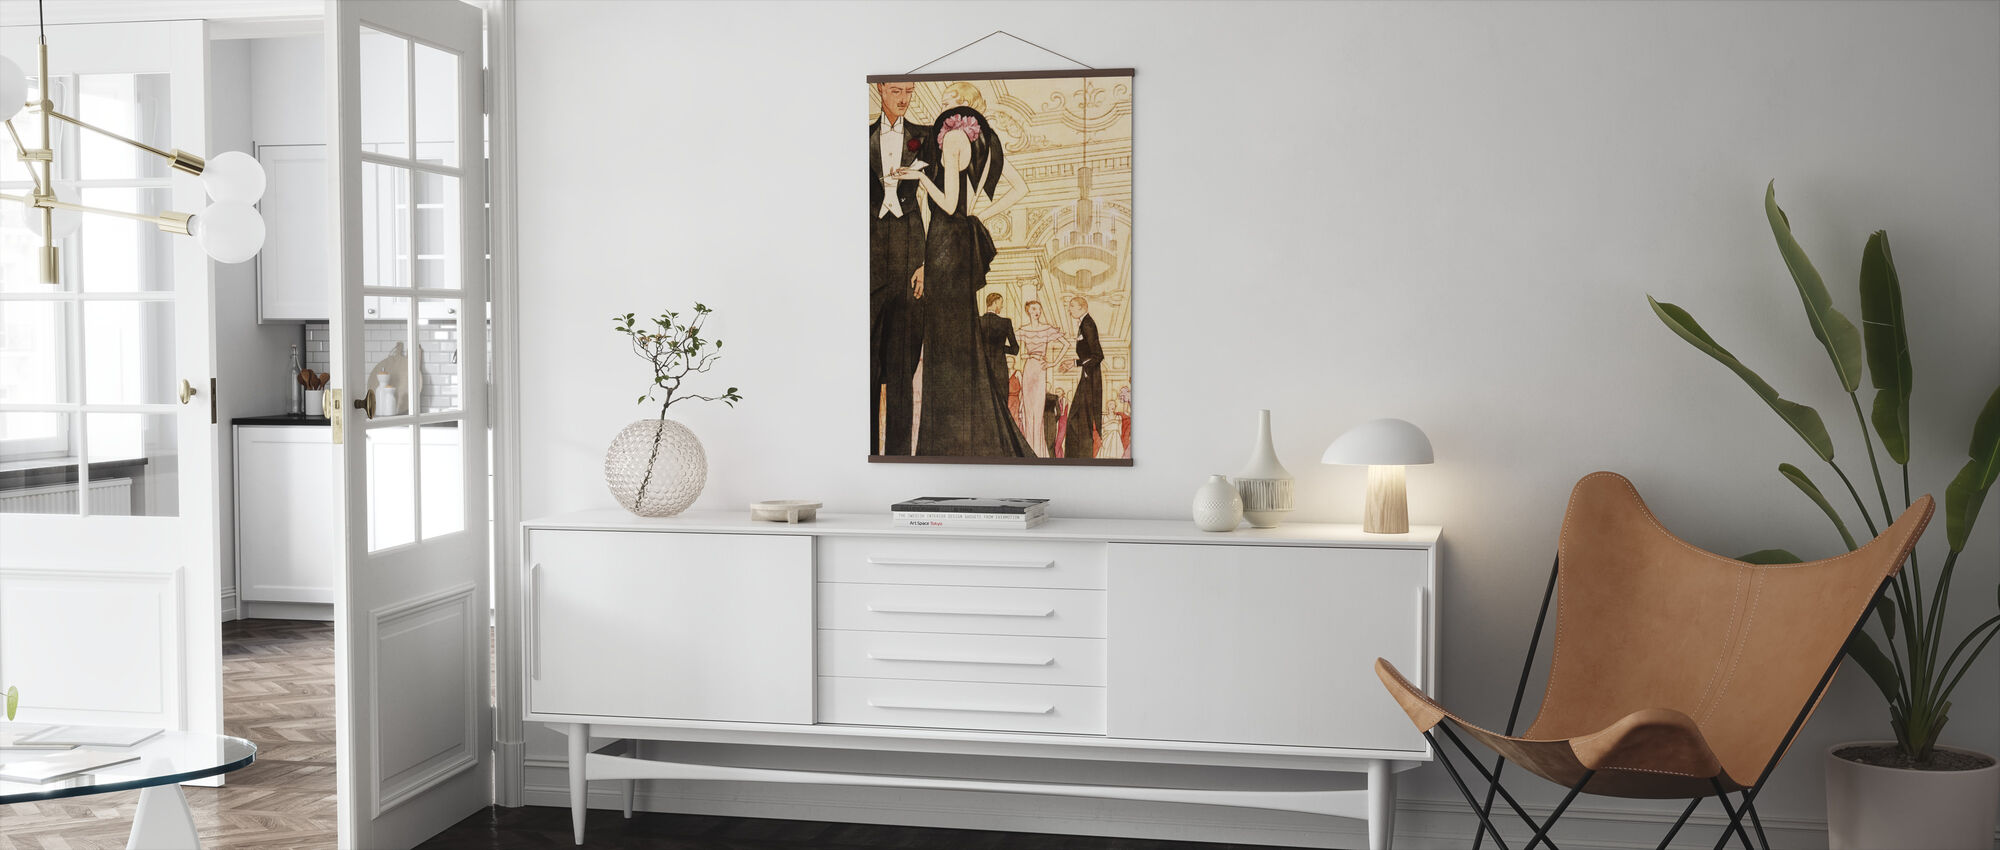 Evening Scene, National Magazines - Poster - Living Room